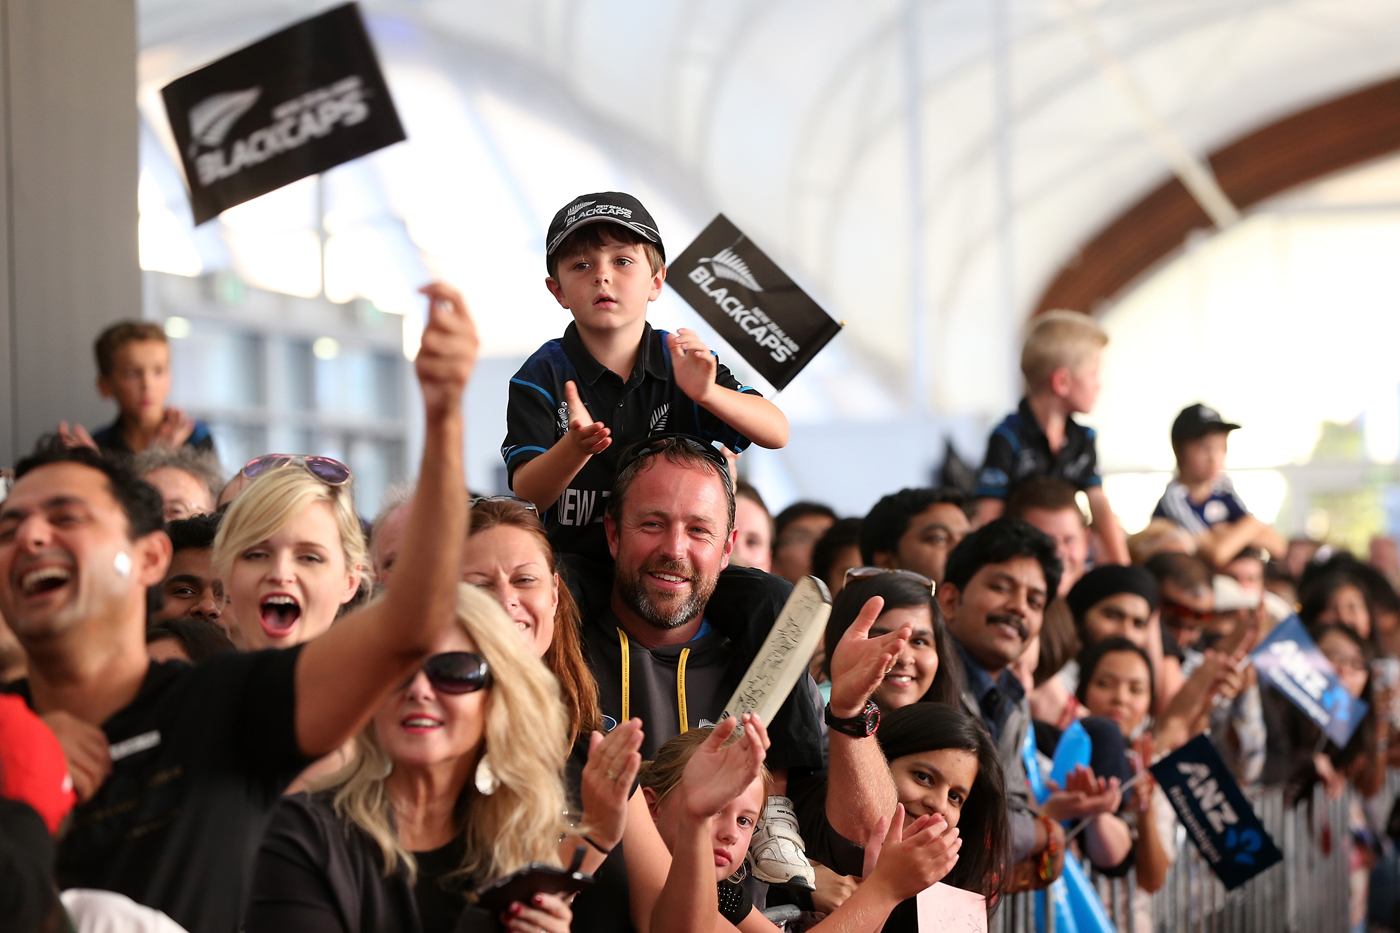 New Zealand were popular favourites during the World Cup. Did that make them more moral?